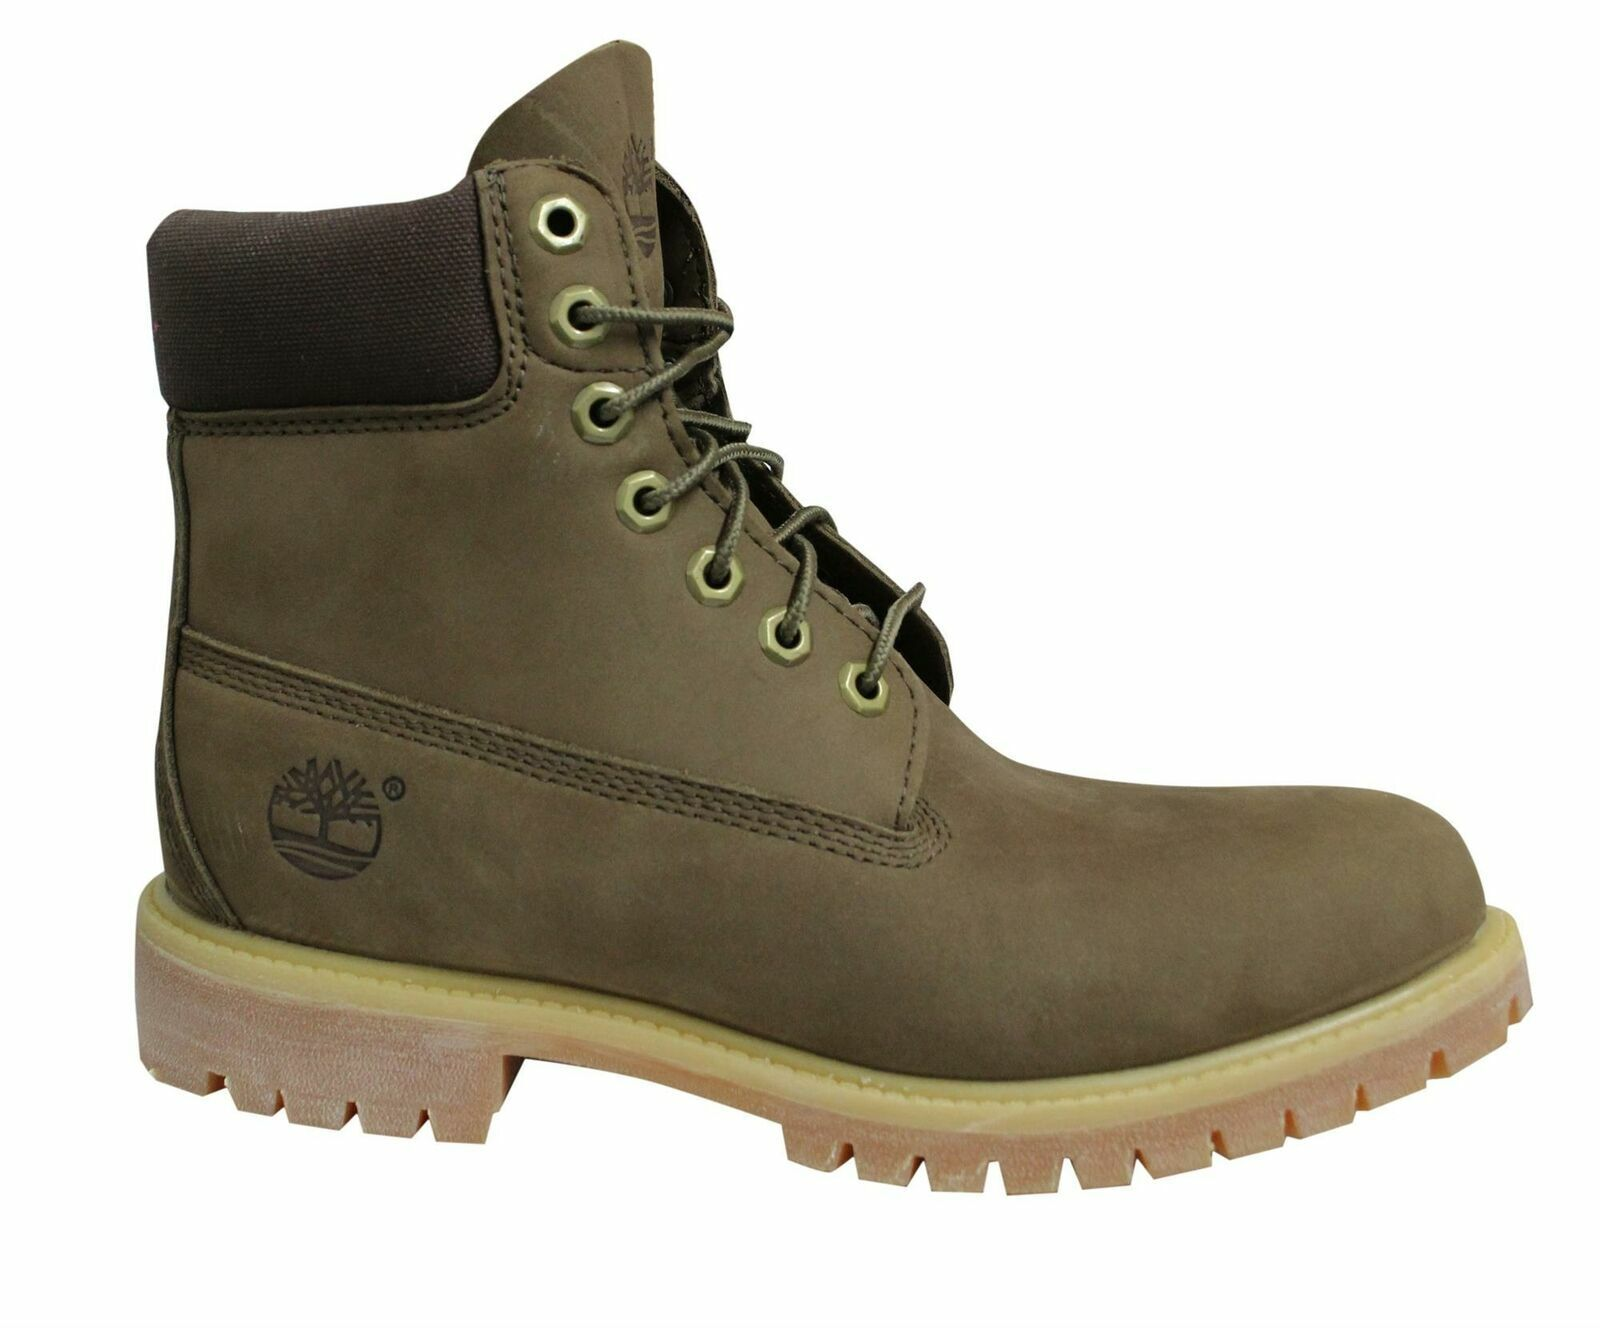 Timberland 6 Inch Green Brown Nubuck Leather Lace Up Mens Boots 6131R